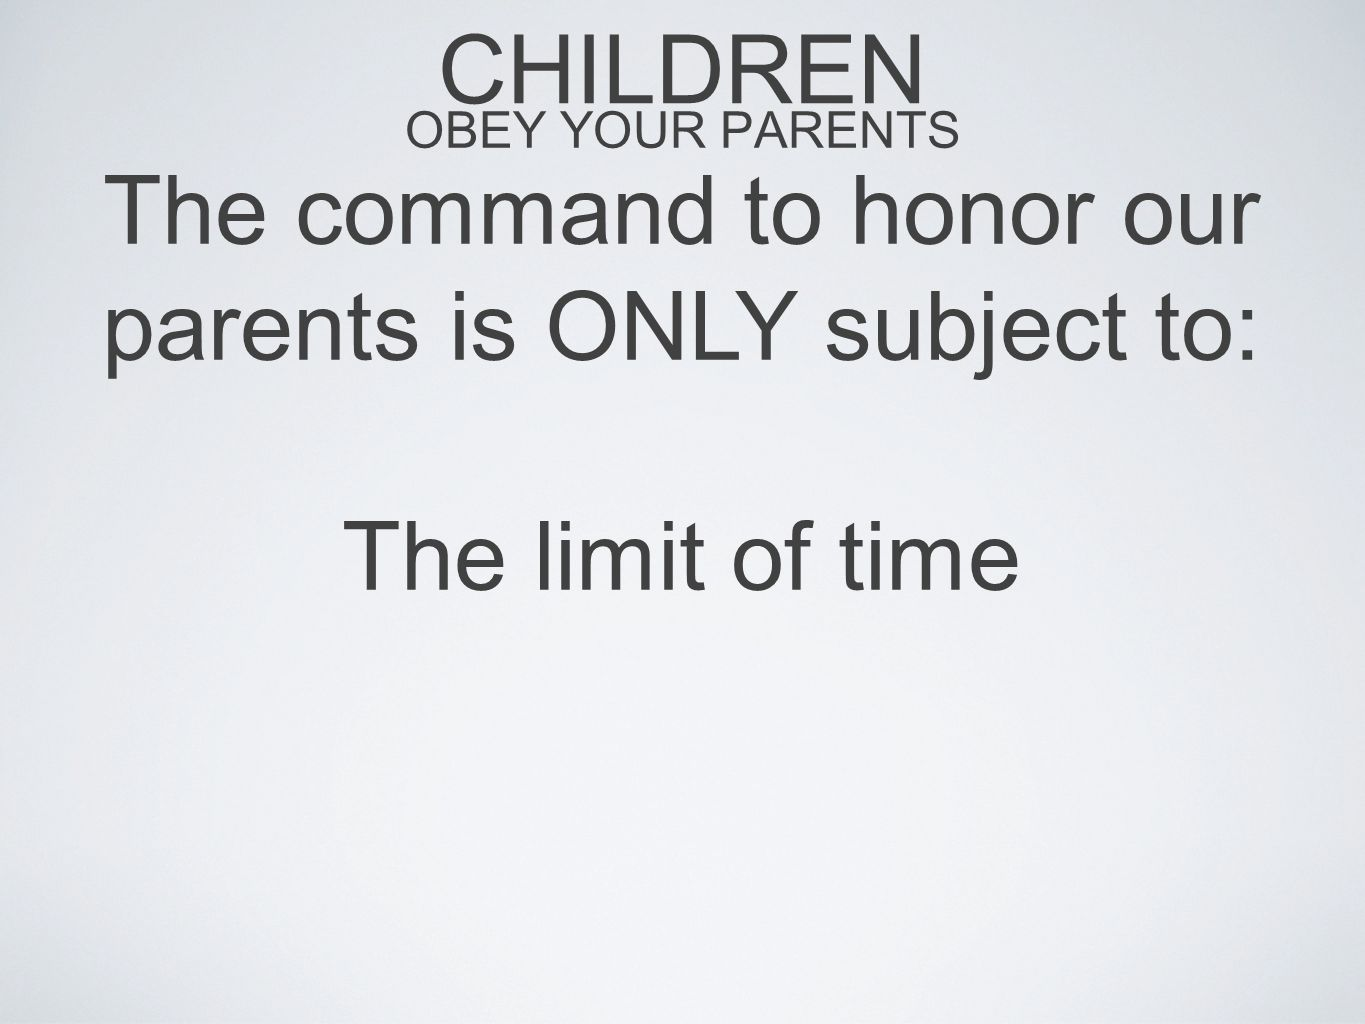 CHILDREN OBEY YOUR PARENTS The command to honor our parents is ONLY subject to: The limit of time